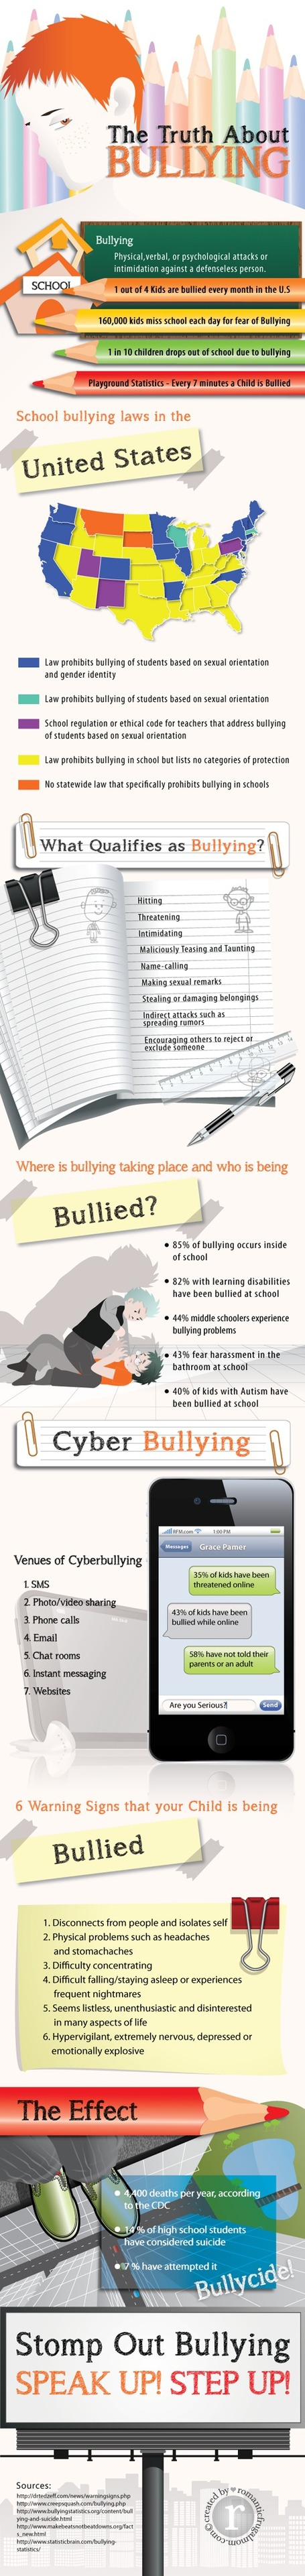 The Truth About Bullying | INFOGRAPHIC - ESL | EFL-ESL &  ELT | Learning, Teaching, Education | Scoop.it